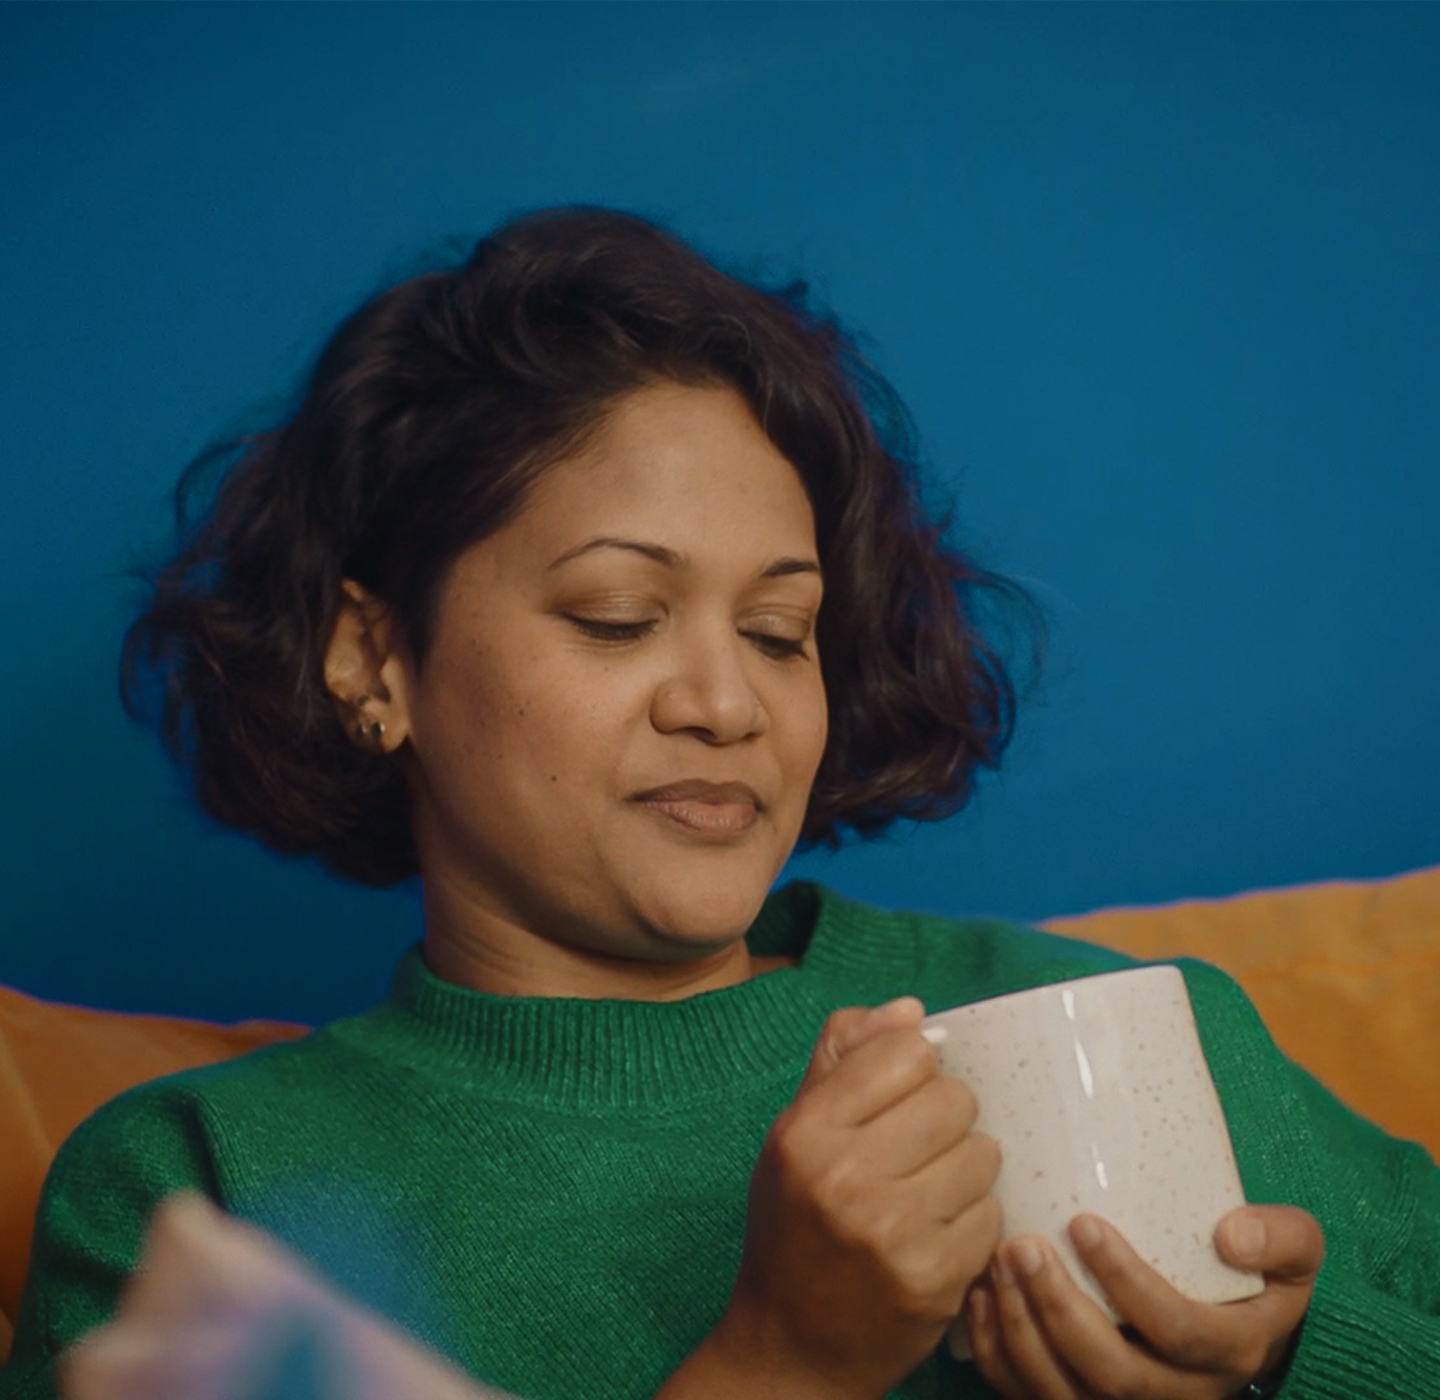 A young woman sat on a sofa looking at a cup of tea she is holding in her hands